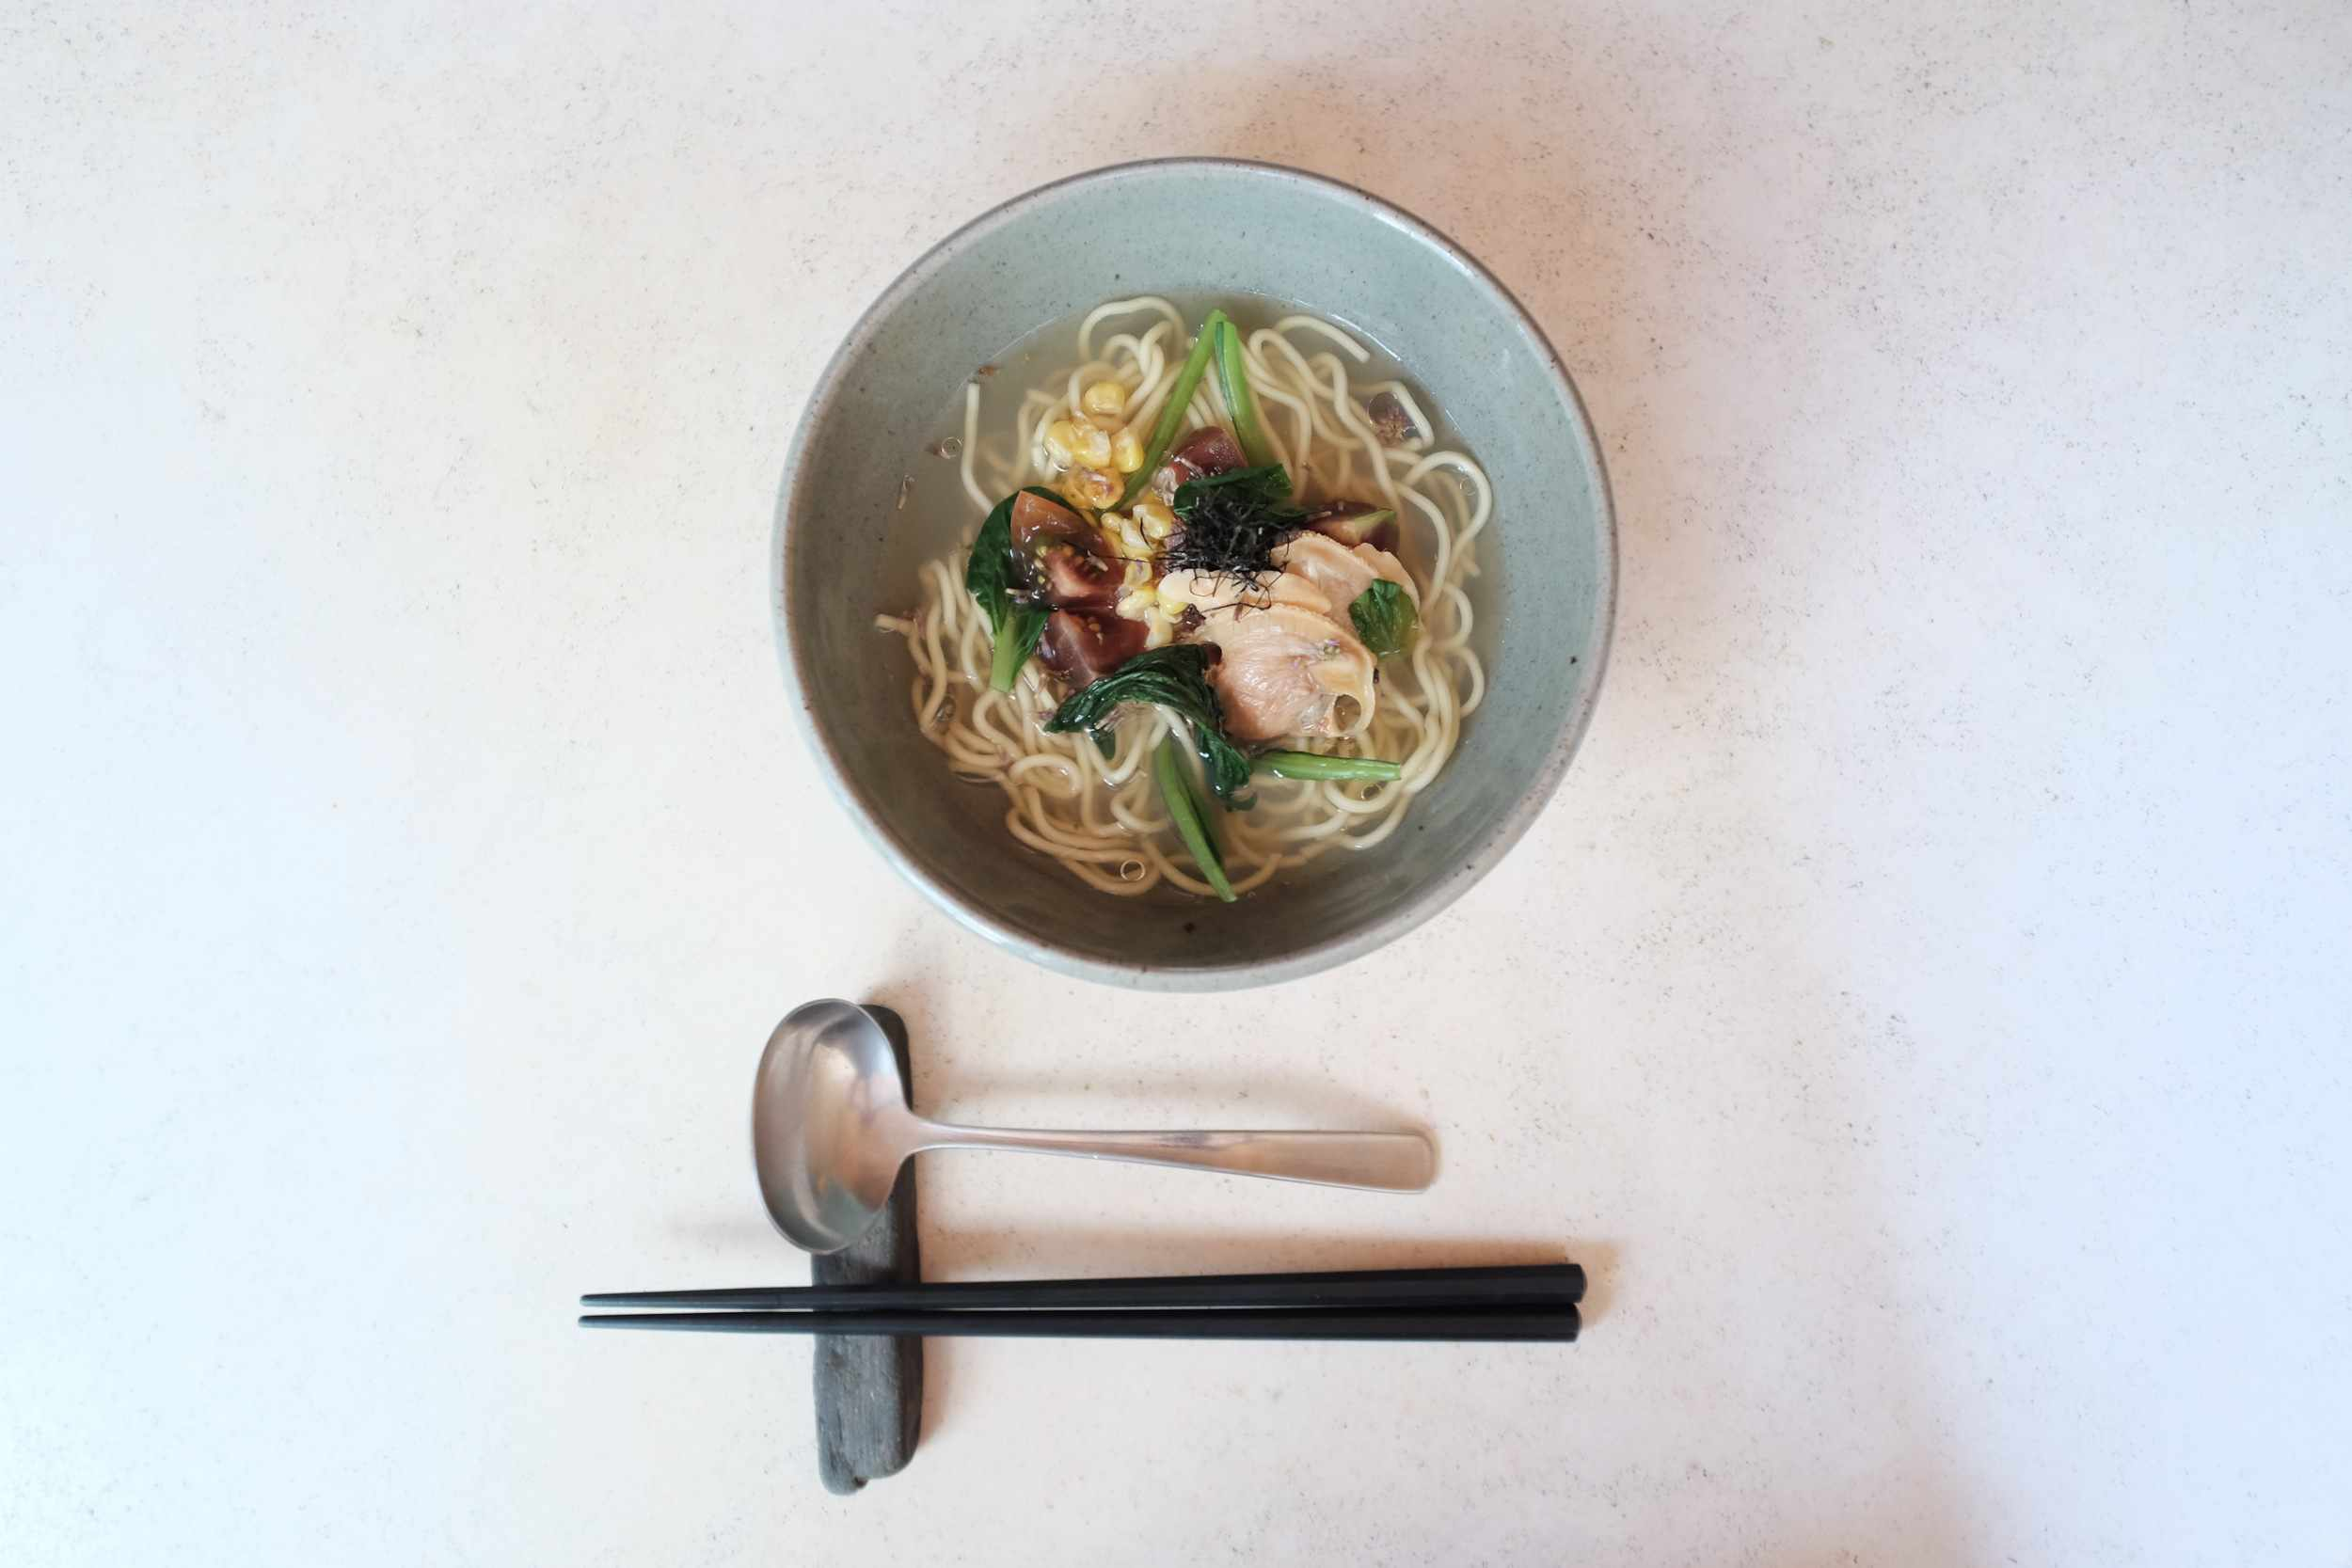 Overhead image of clear broth ramen with clams, spinach, and tomatoes. below the bow there is a pair of chopsticks and a wide spoon on a chopstick rest from YUJI Ramen